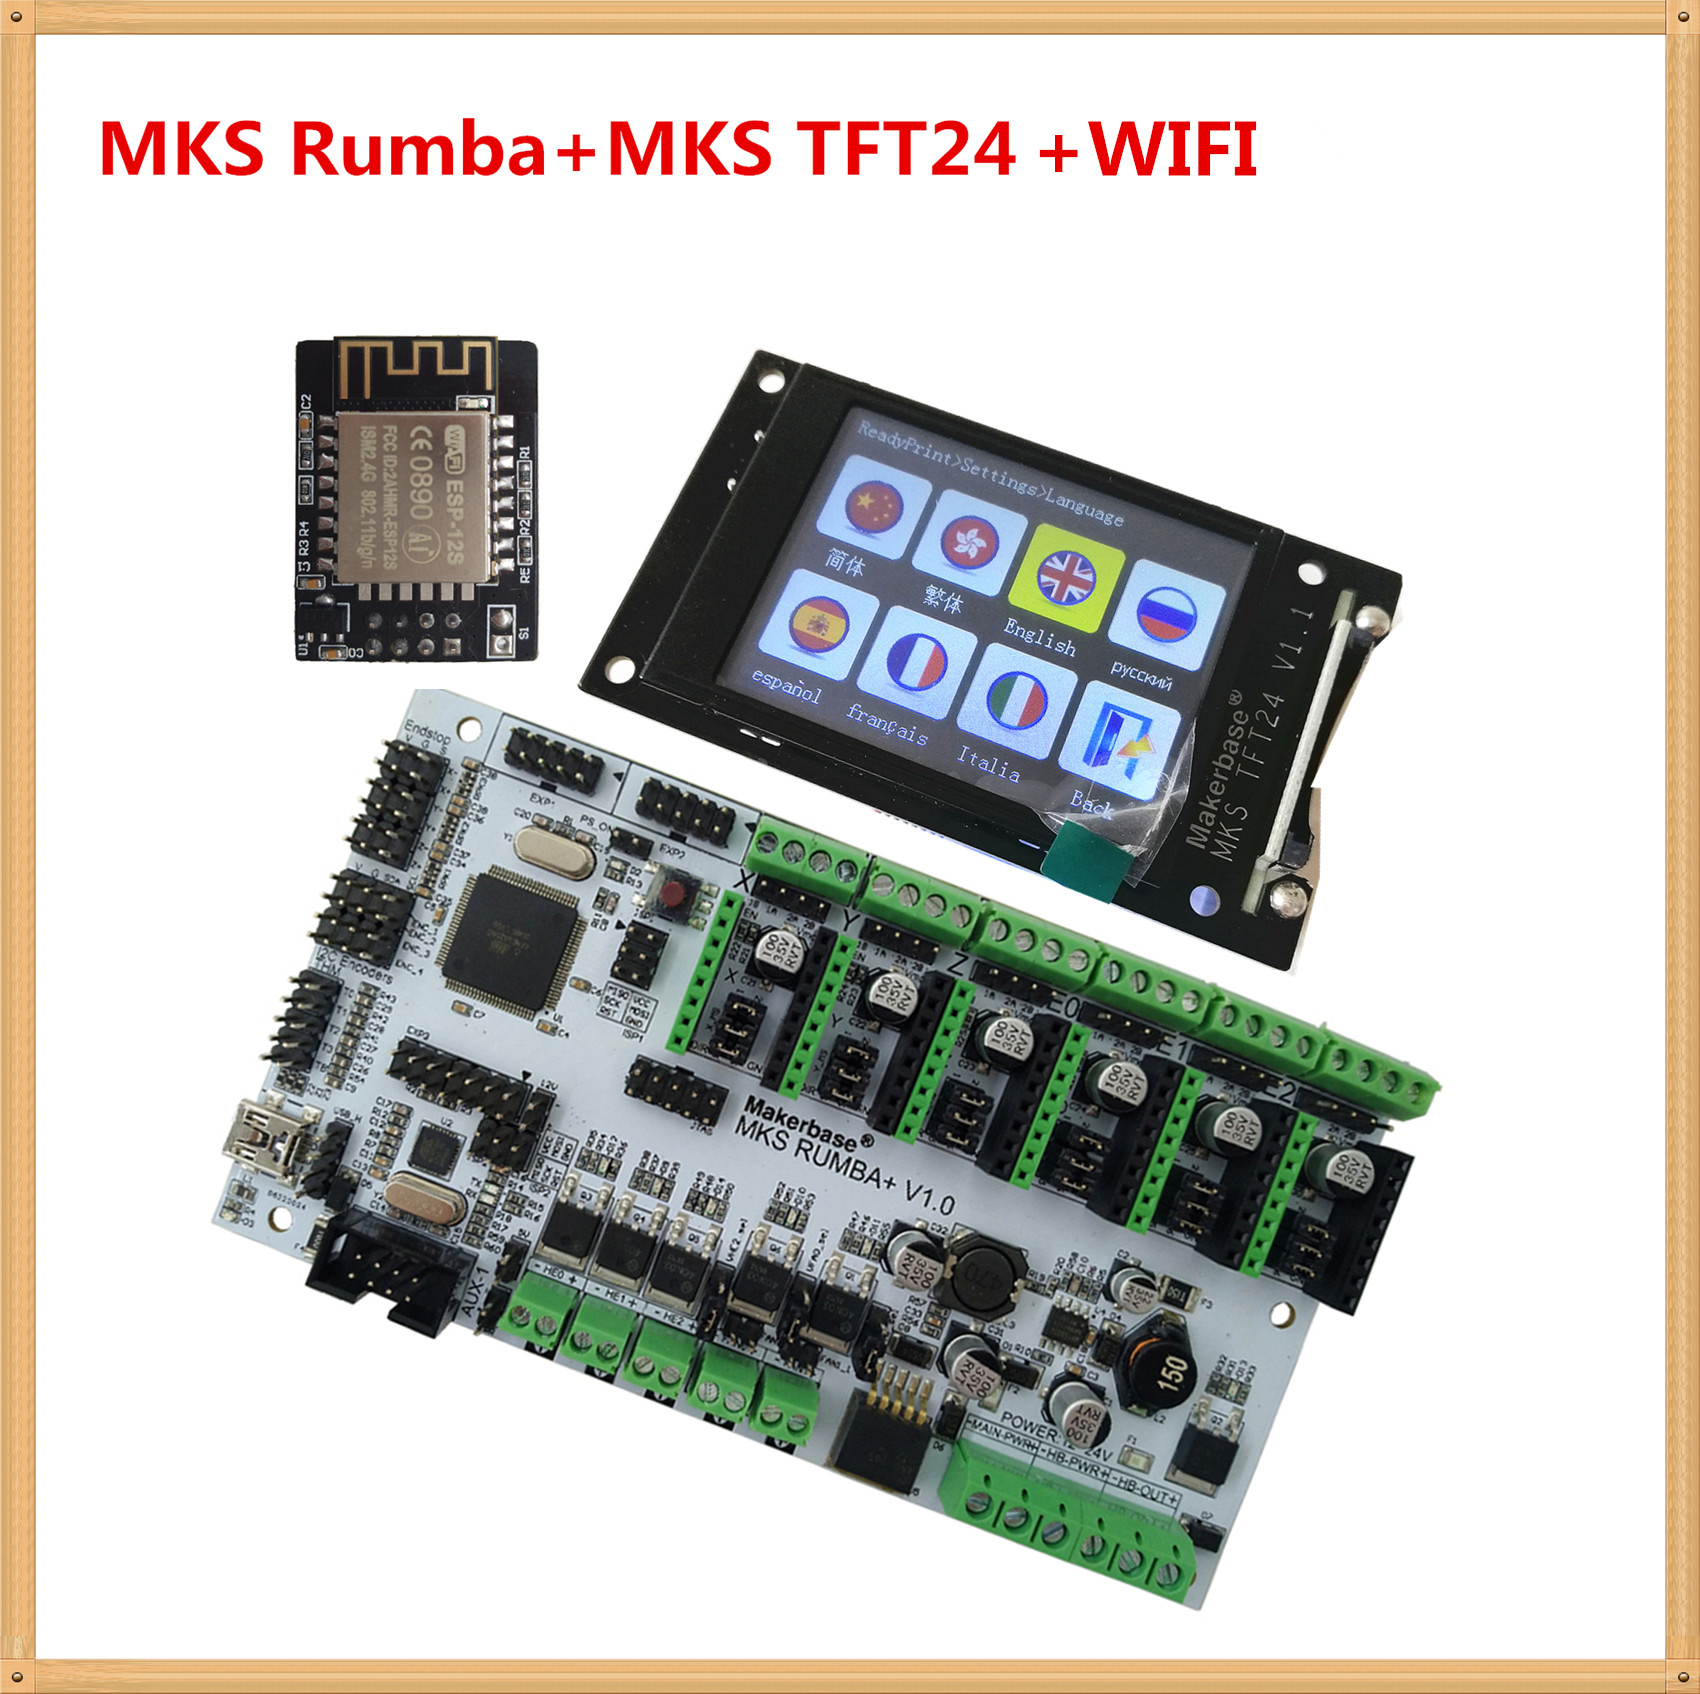 3D Printer Motherboard MKS Rumba + MKS TFT24 Display 2.4 Inch Touch Screen LCD Controller Card Rumba-board Electronic Diy Kit